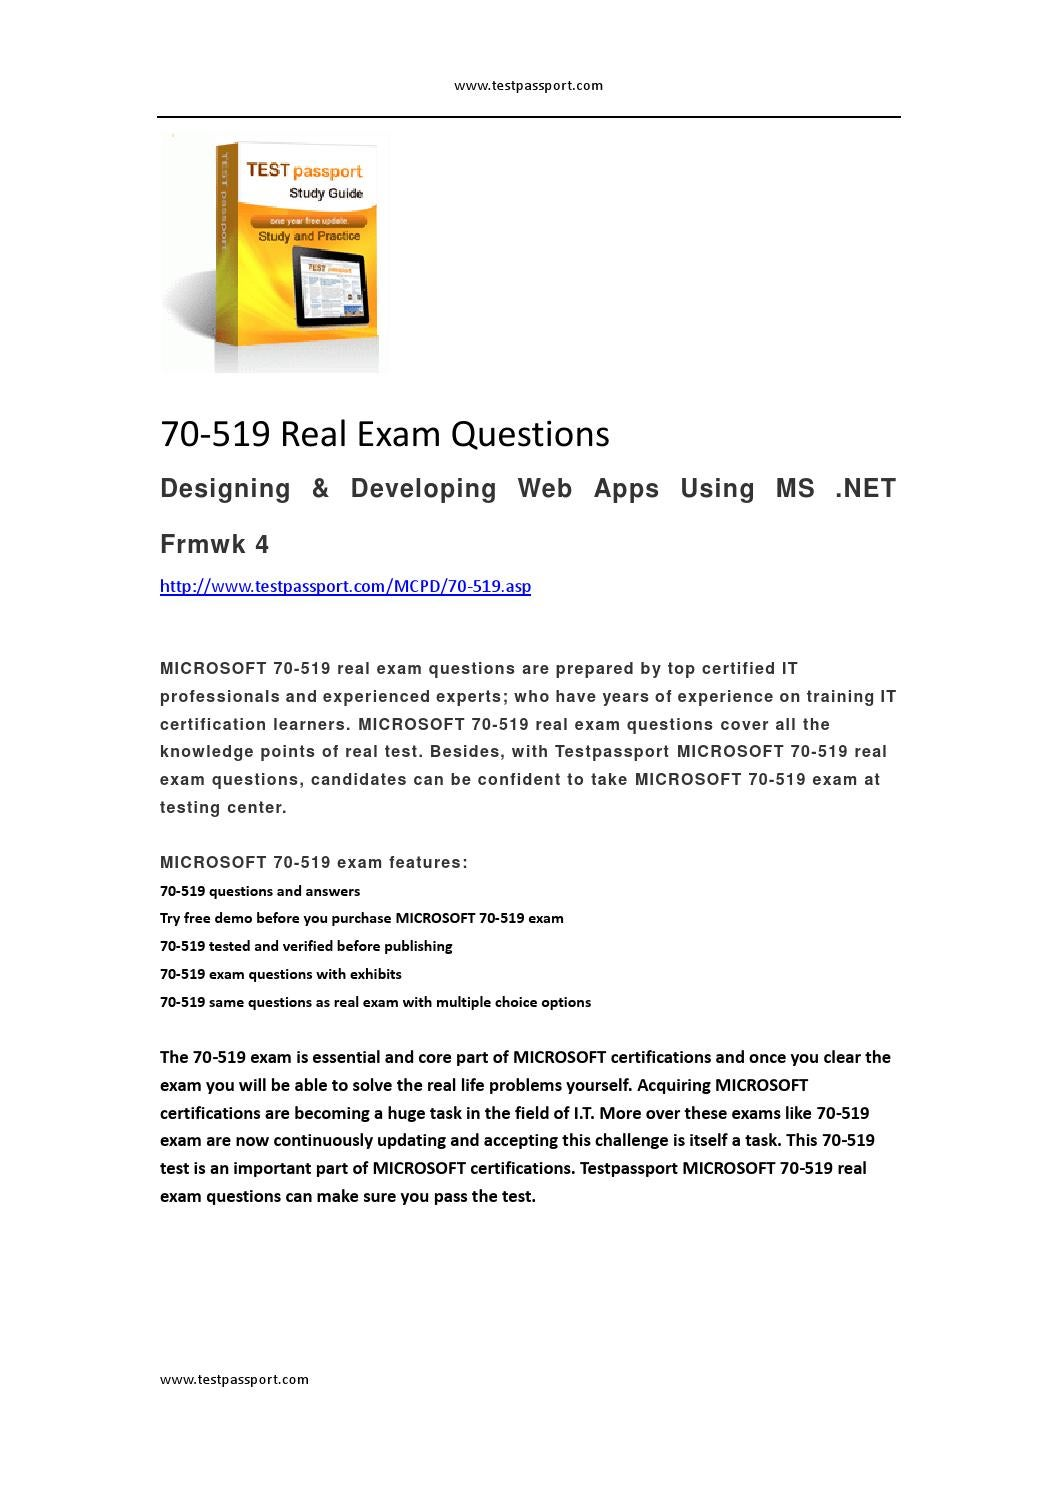 Testpassport 70 519 Real Exam Questions By Mallett Issuu